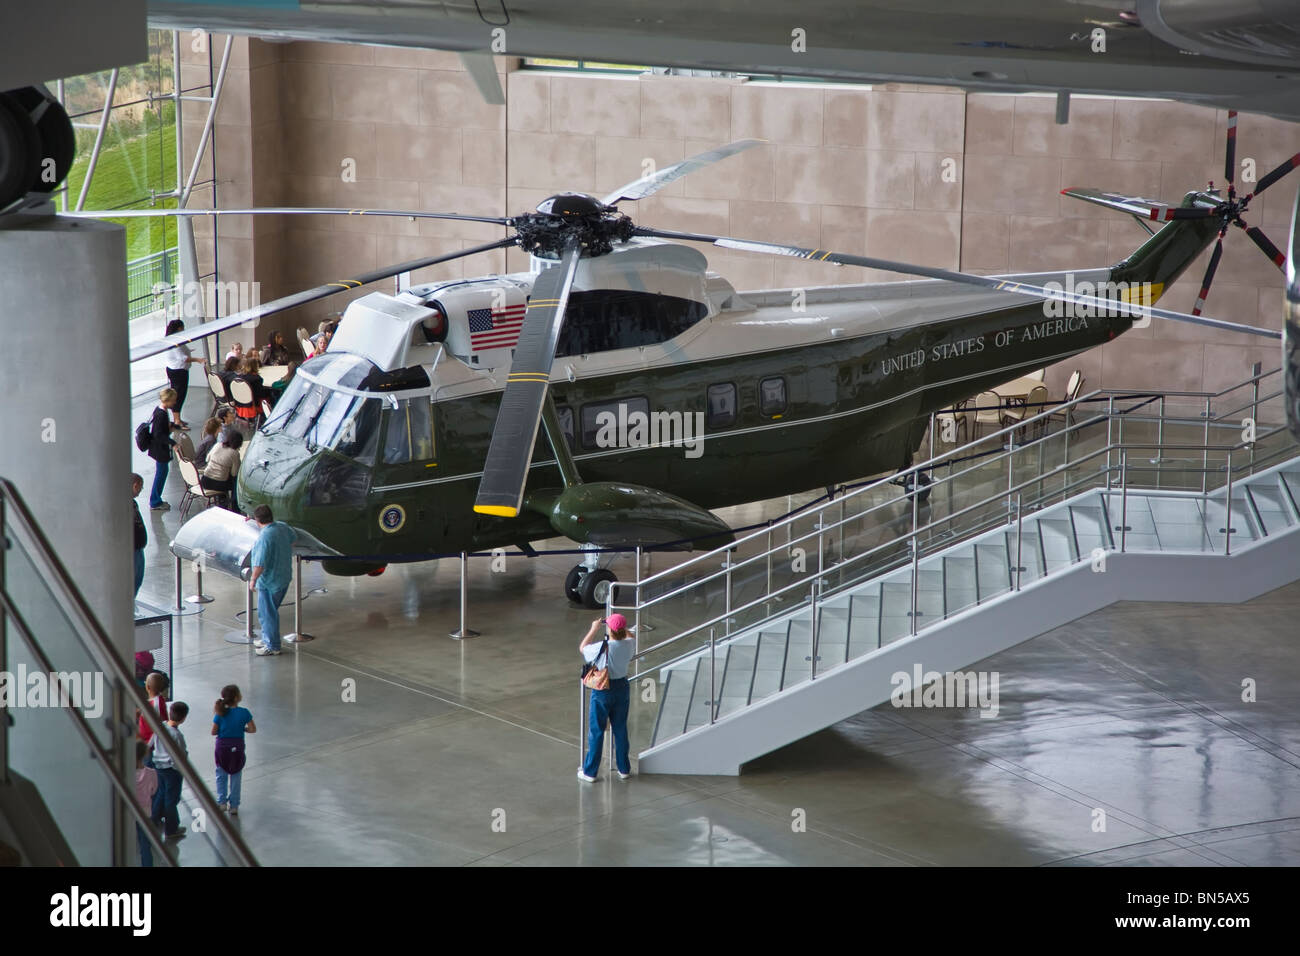 marine one exhibit at the ronald reagan presidential library and museum in simi valley california